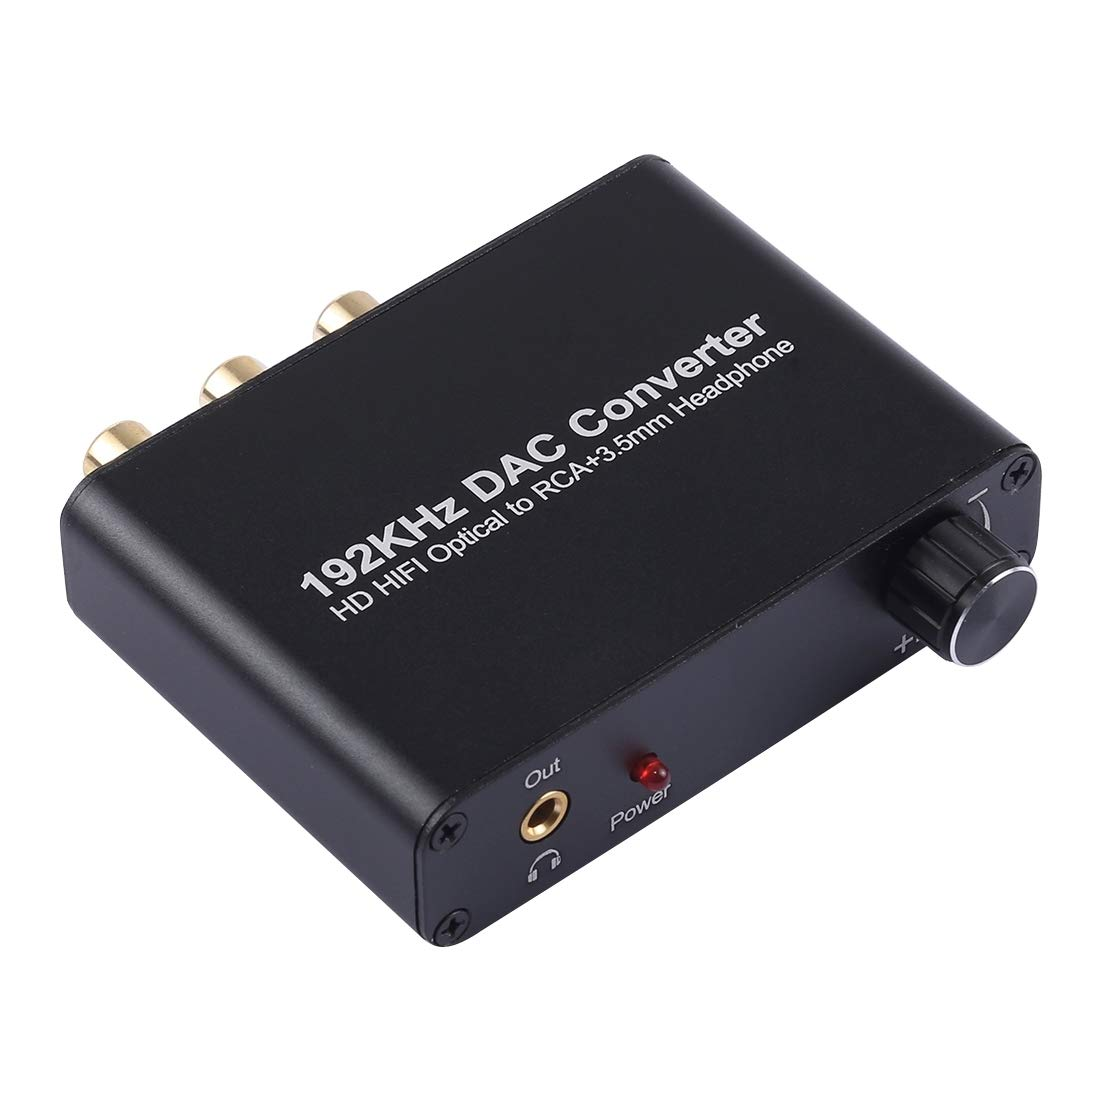 Audio Cables 192KHz DAC Converter HD HiFi Optical to RCA+3.5mm Headphone 5.1 Channel Digital Audio Converter with Volume Control Optical